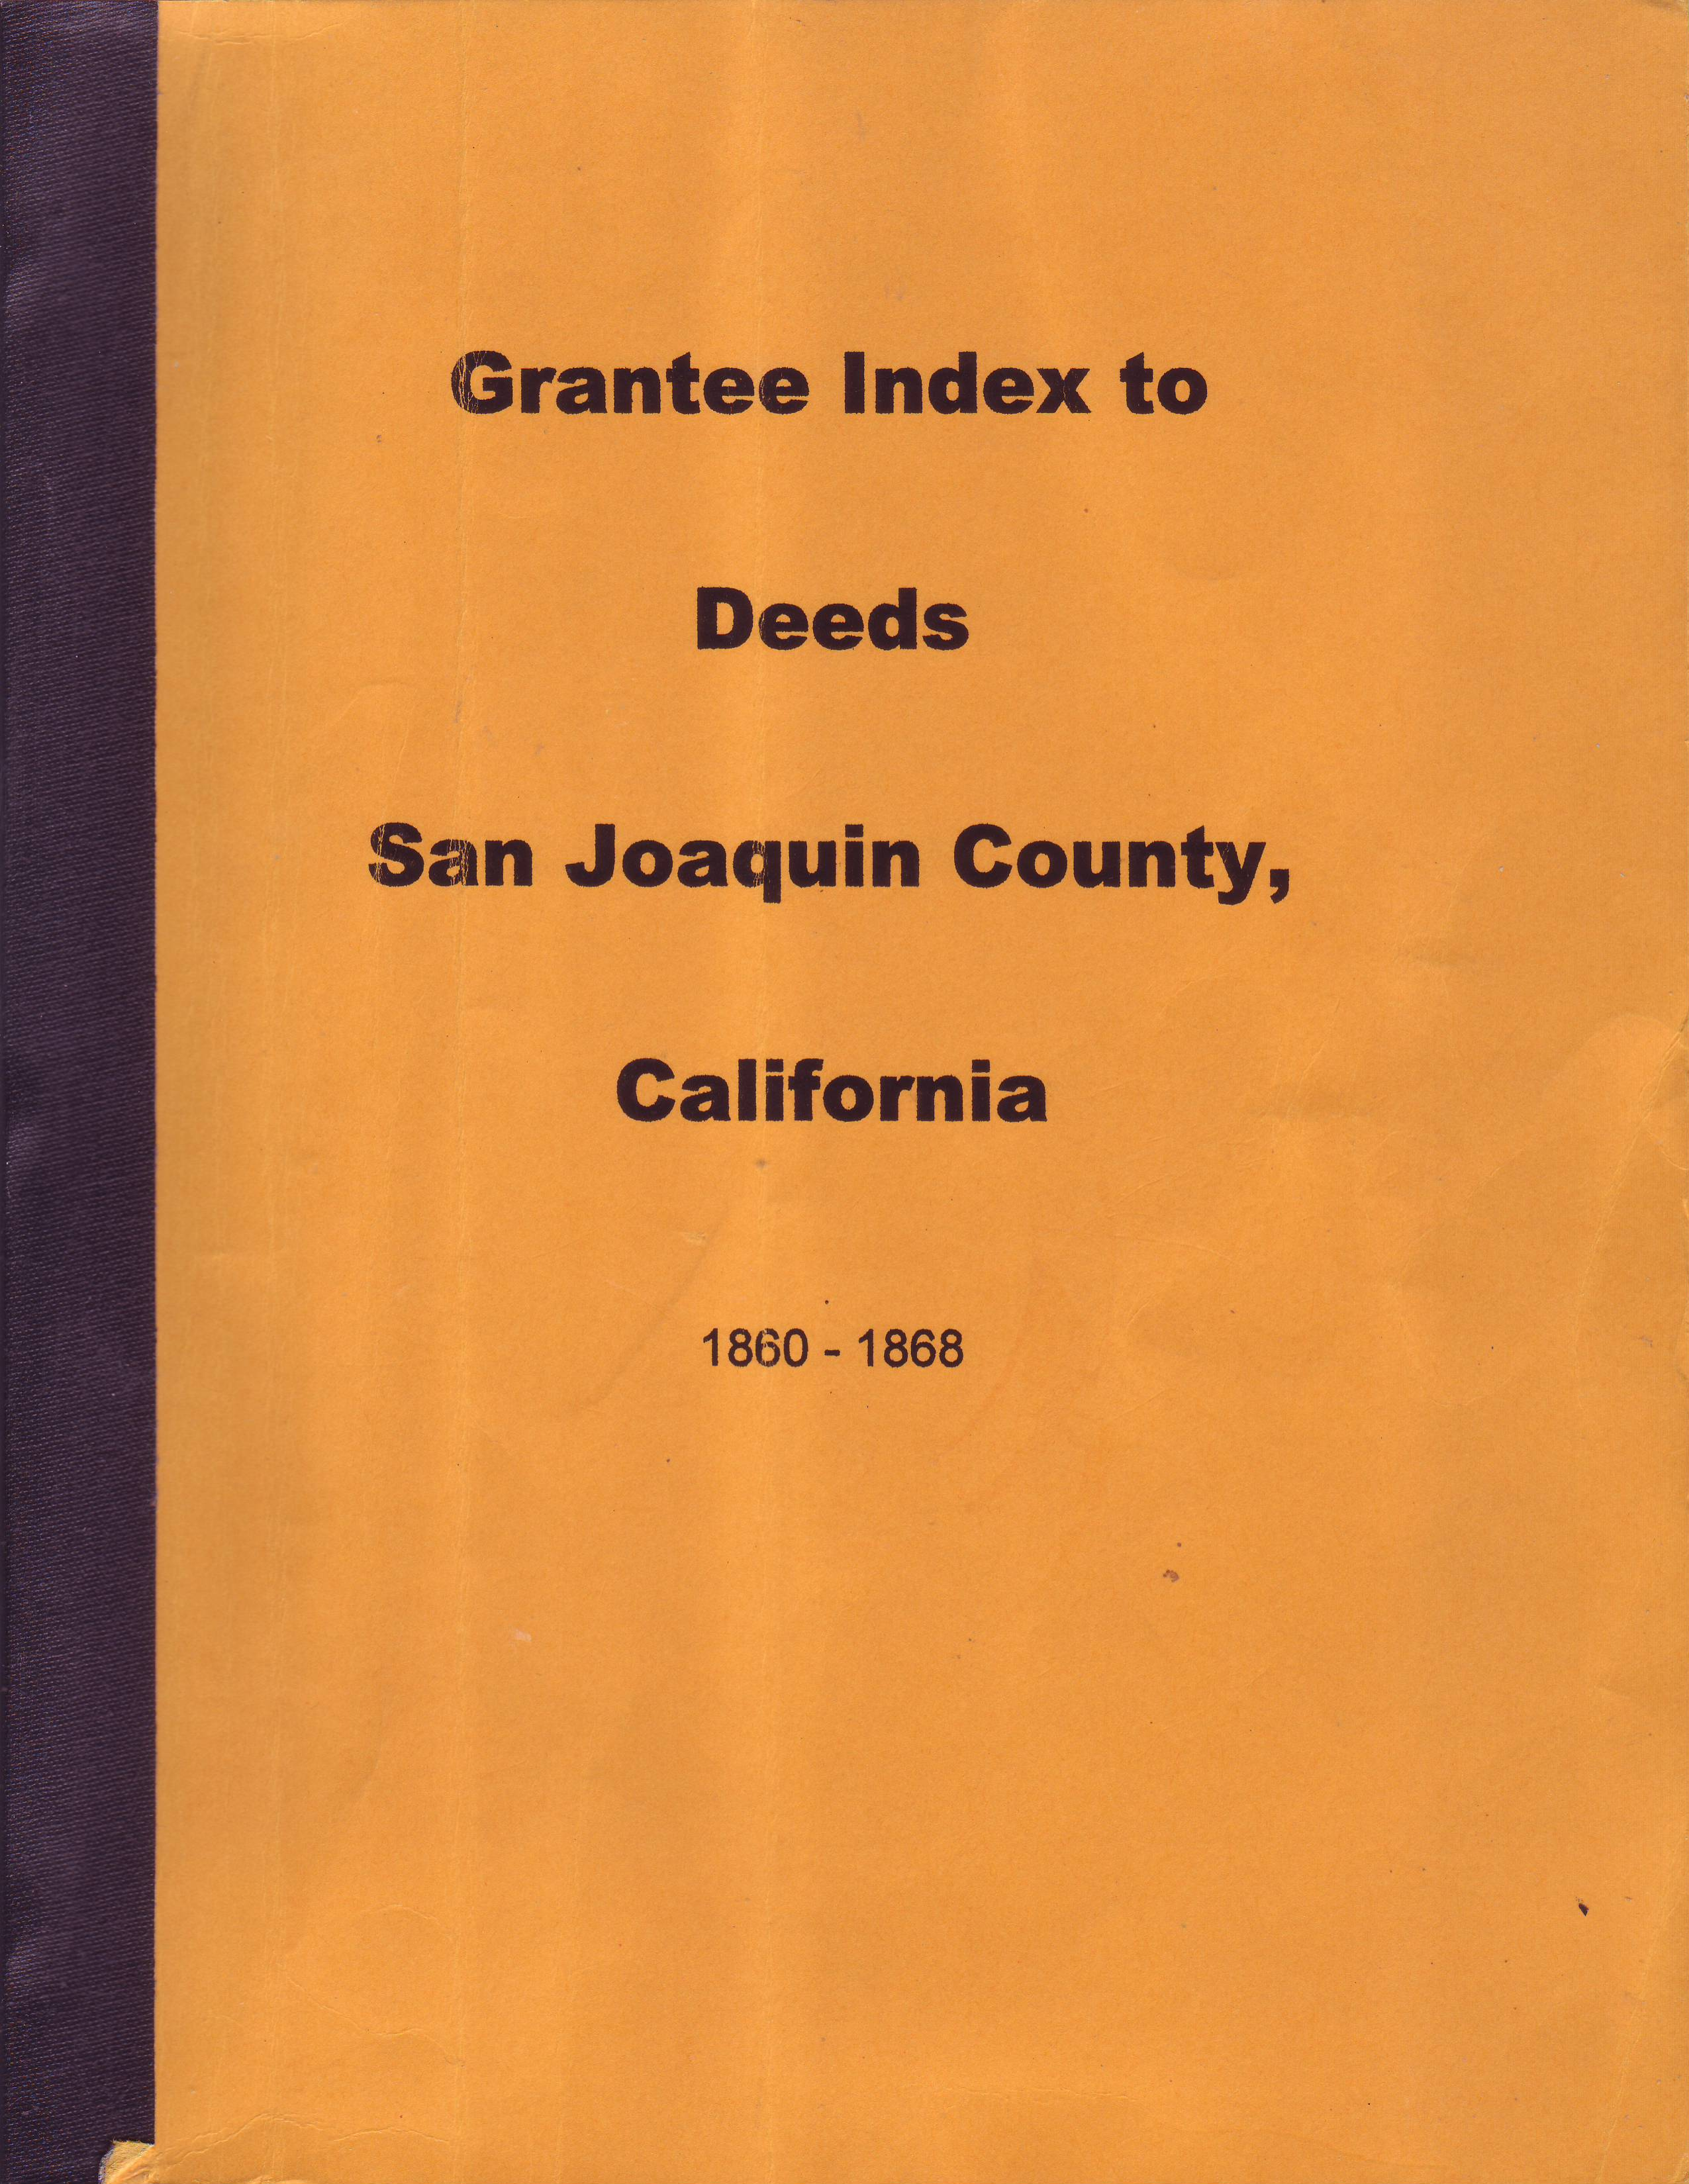 Grantee Index to Deeds, San Joaquin County, California, 1860-1868